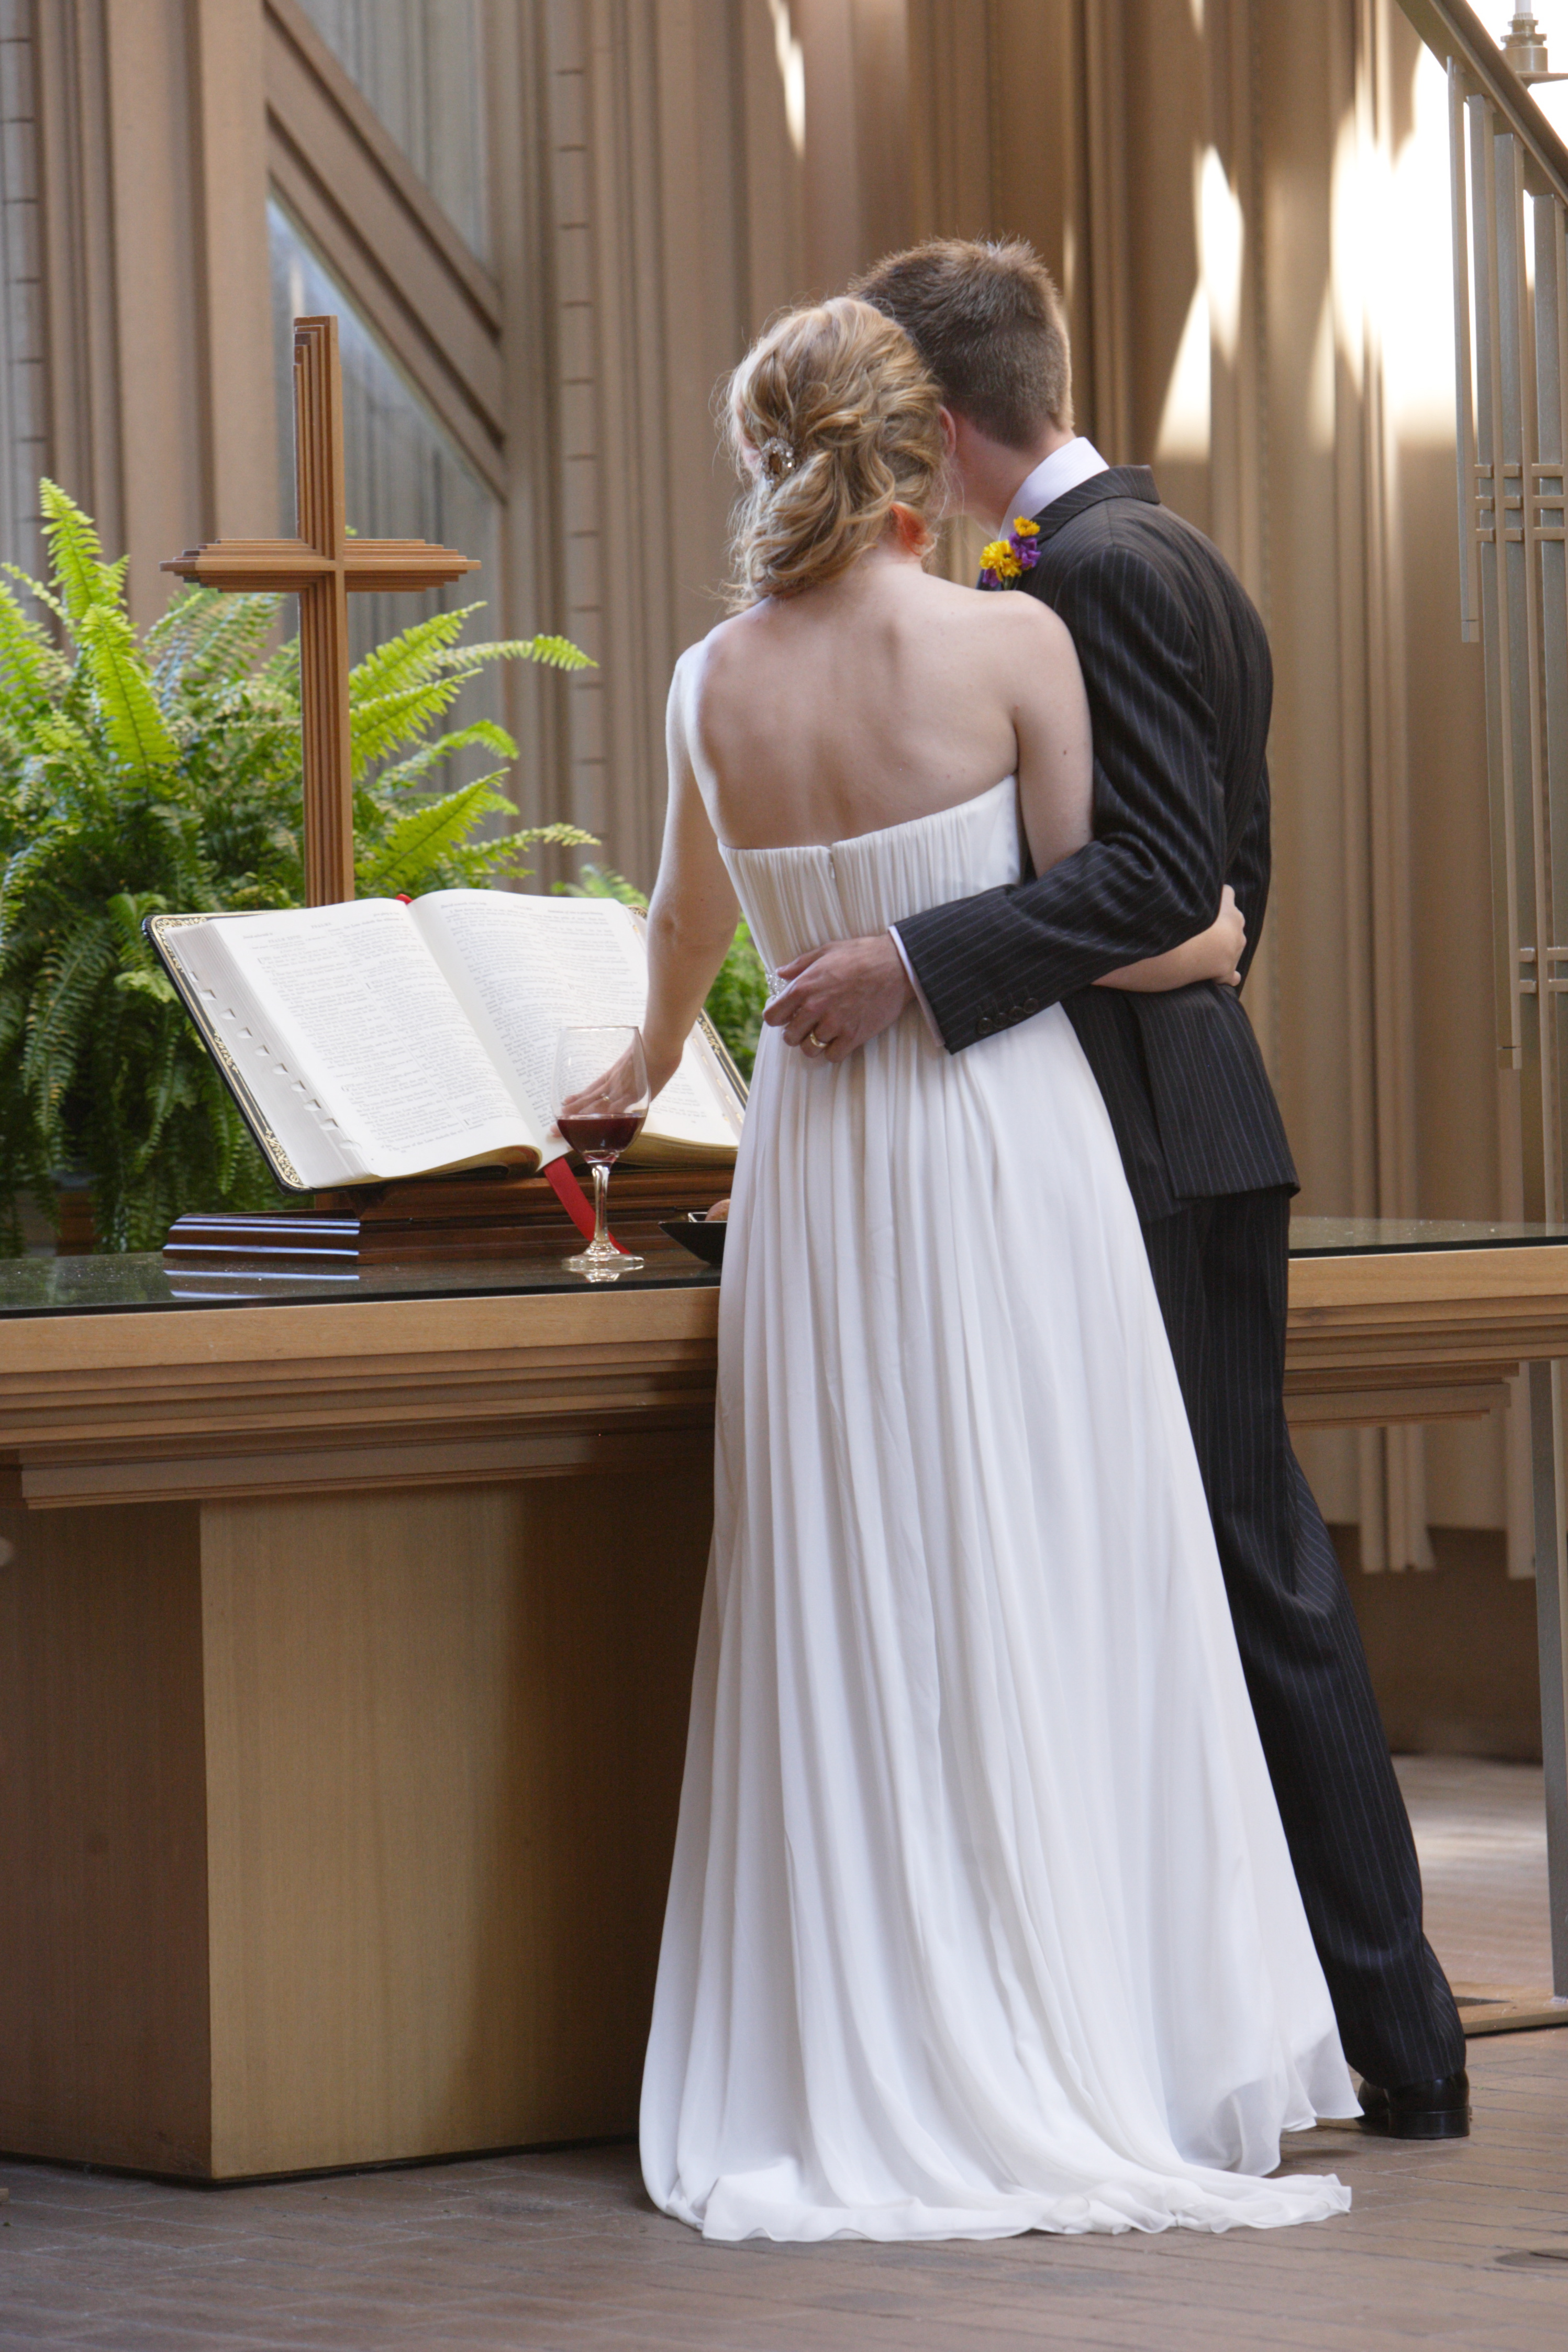 The Altar in Marriage